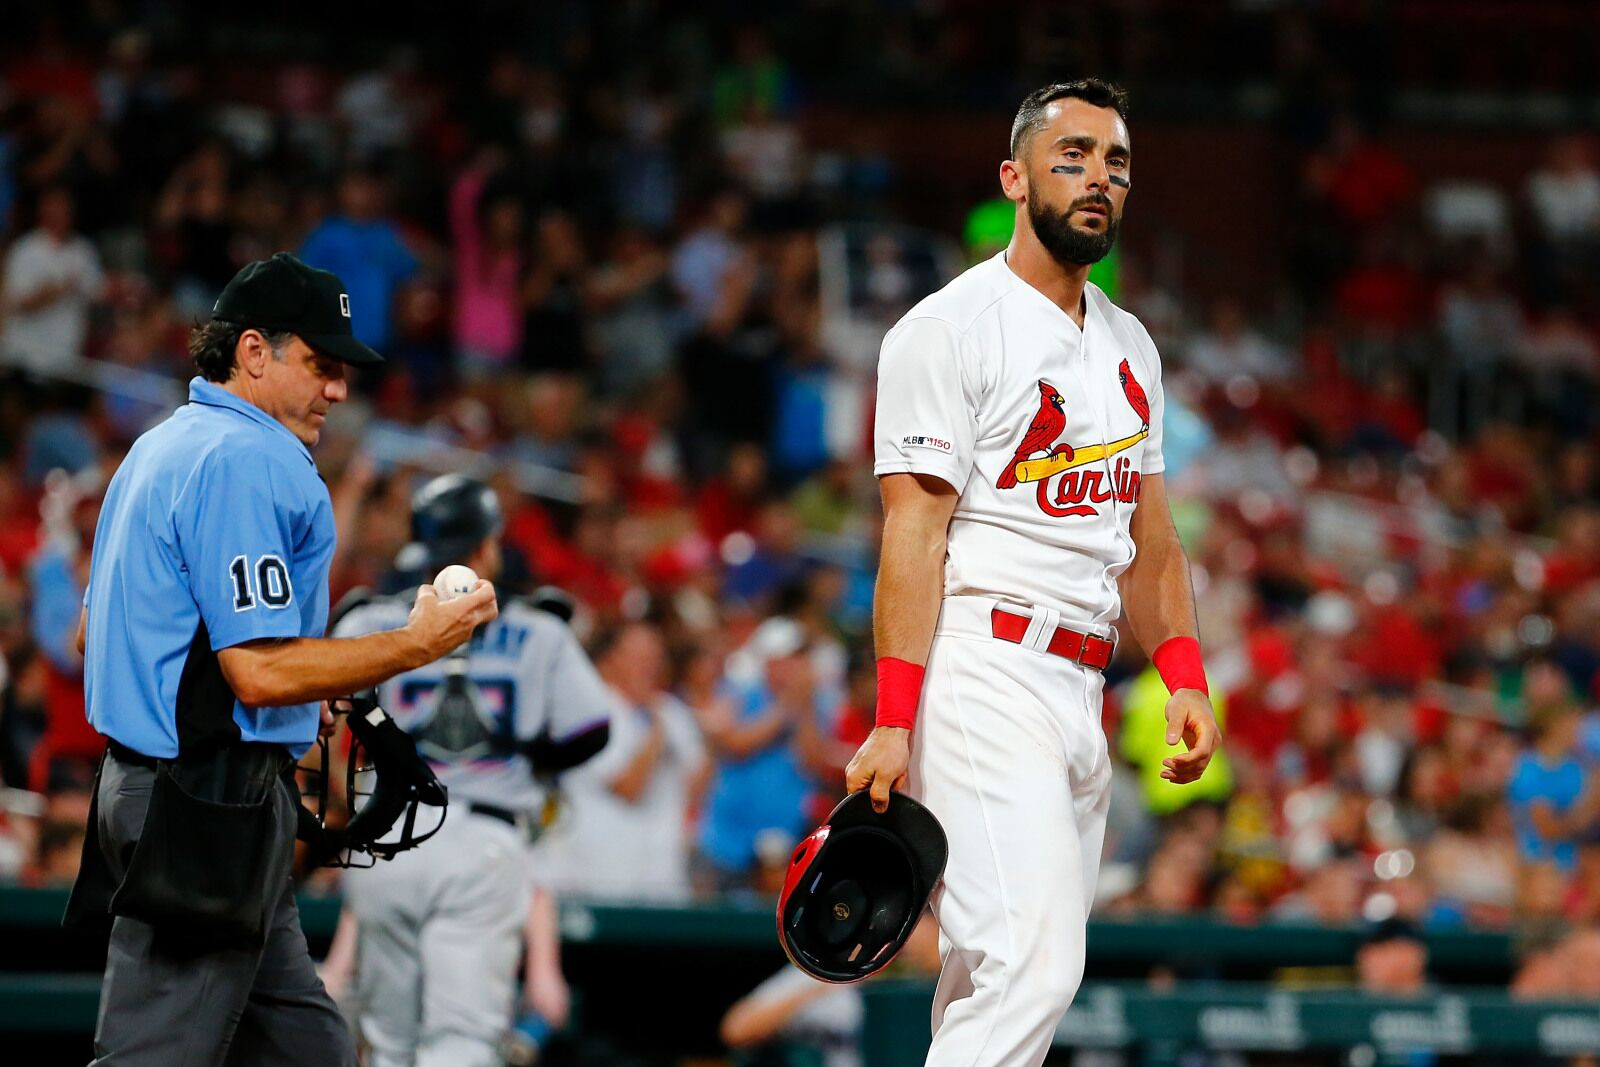 St. Louis Cardinals: July-changing roster moves announced